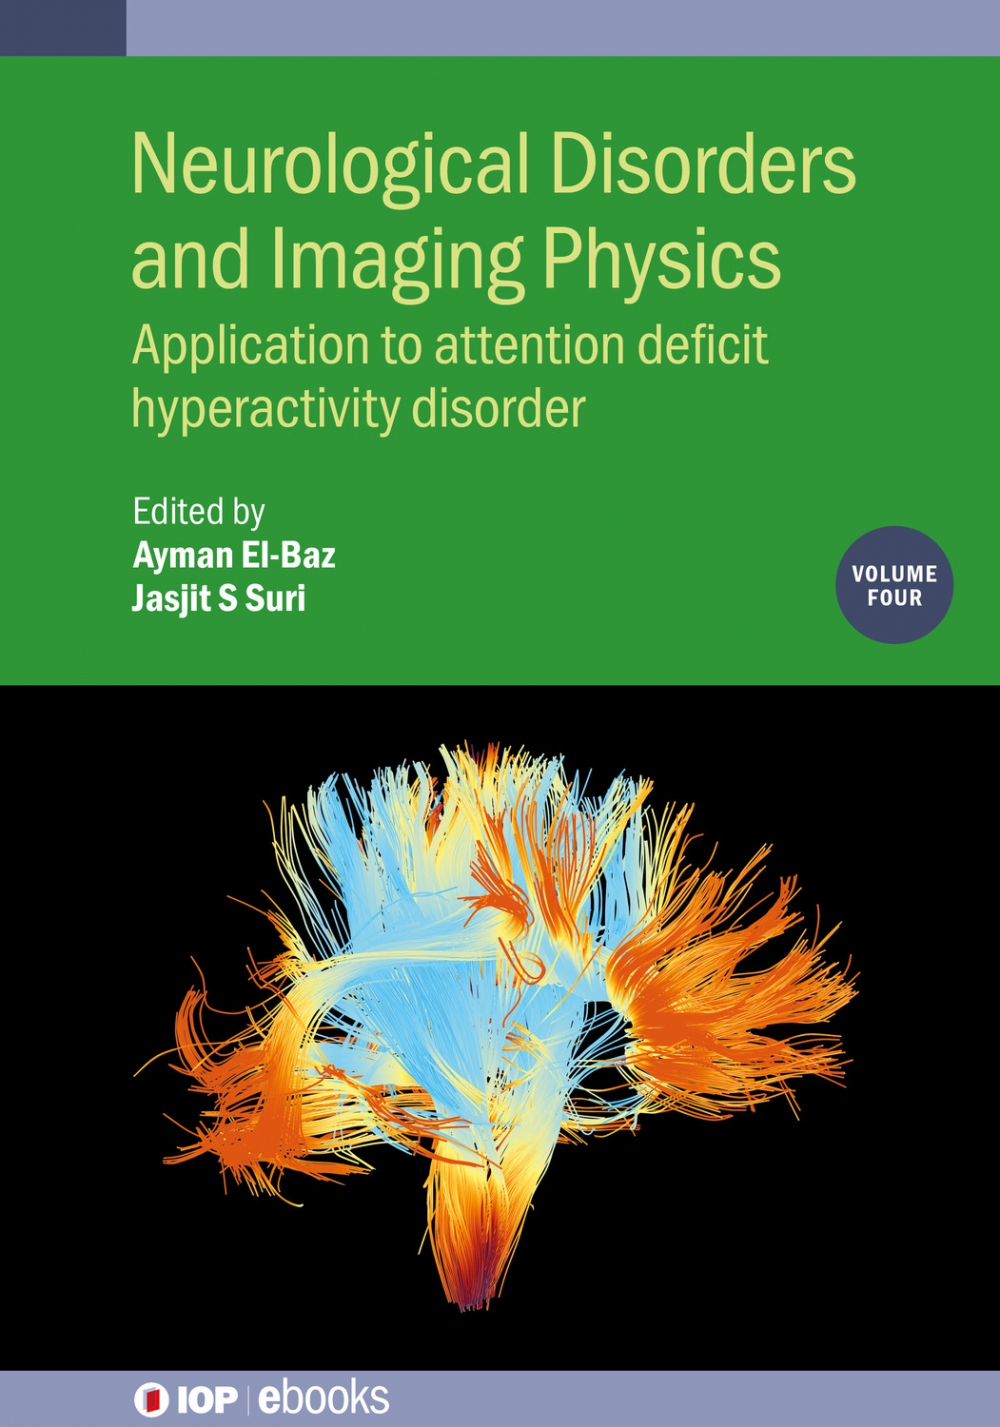 Jacket image for Neurological Disorders and Imaging Physics, Volume 4